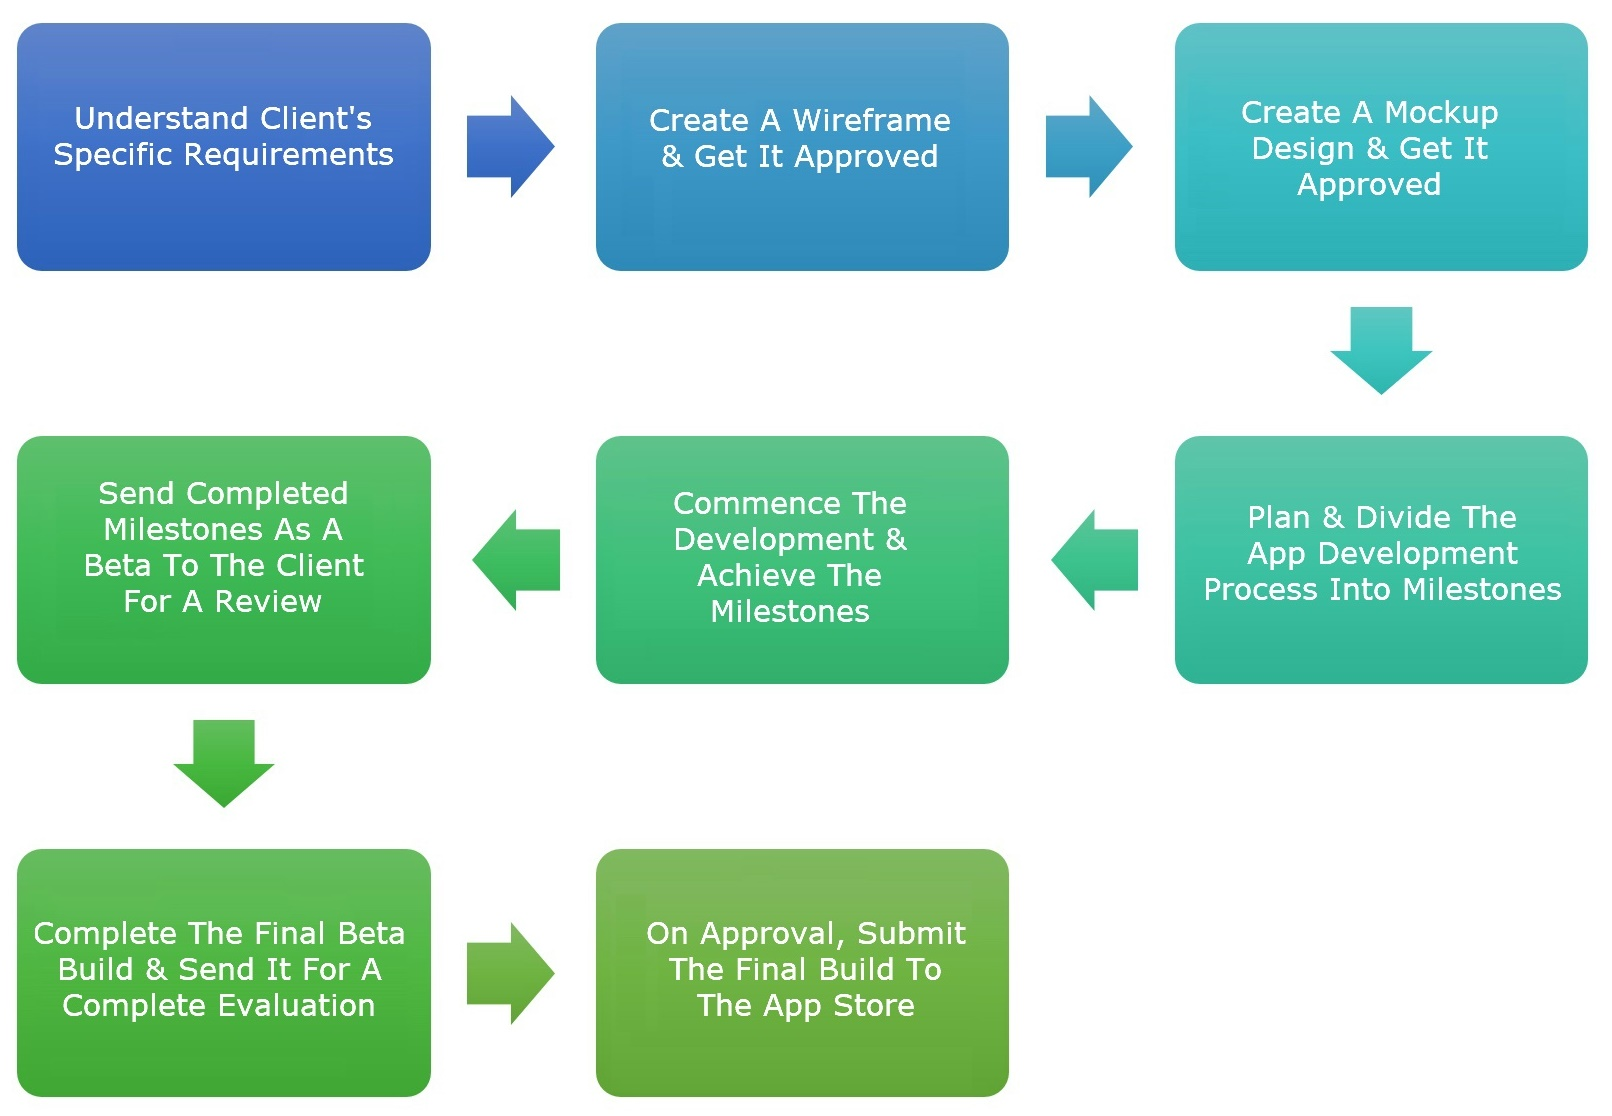 Our mHealth App Development Process